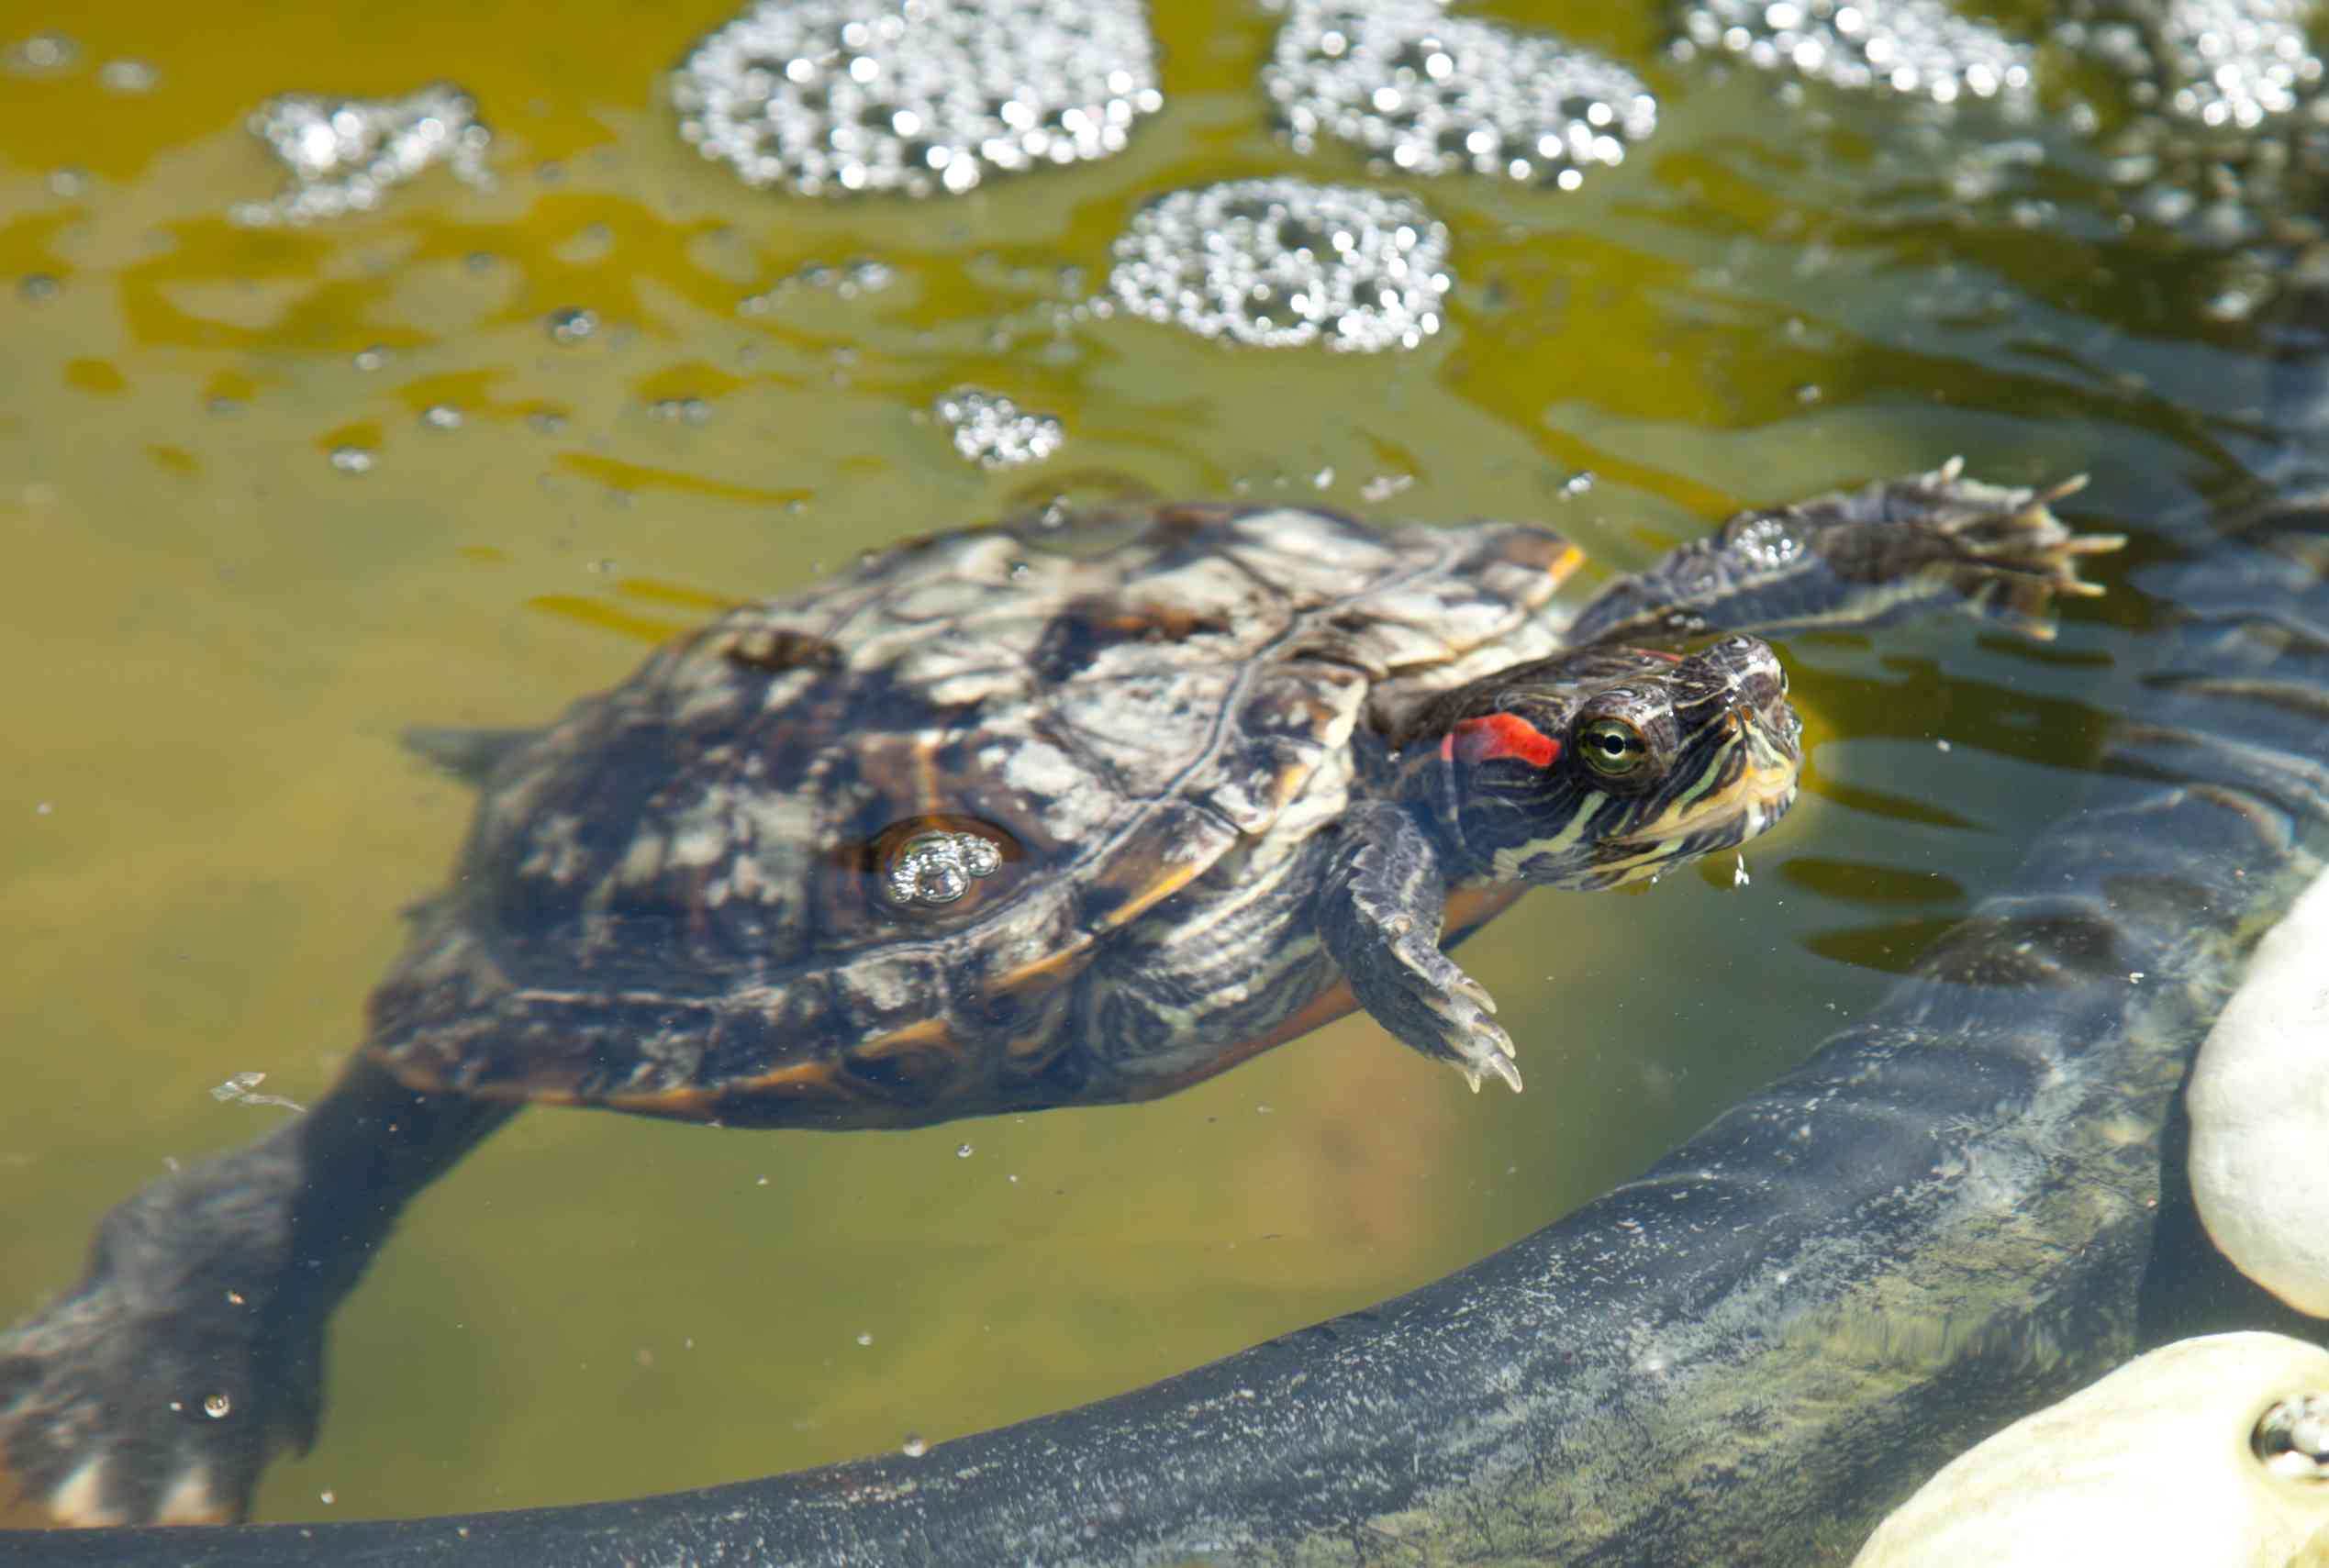 Red-eared slider in a pond